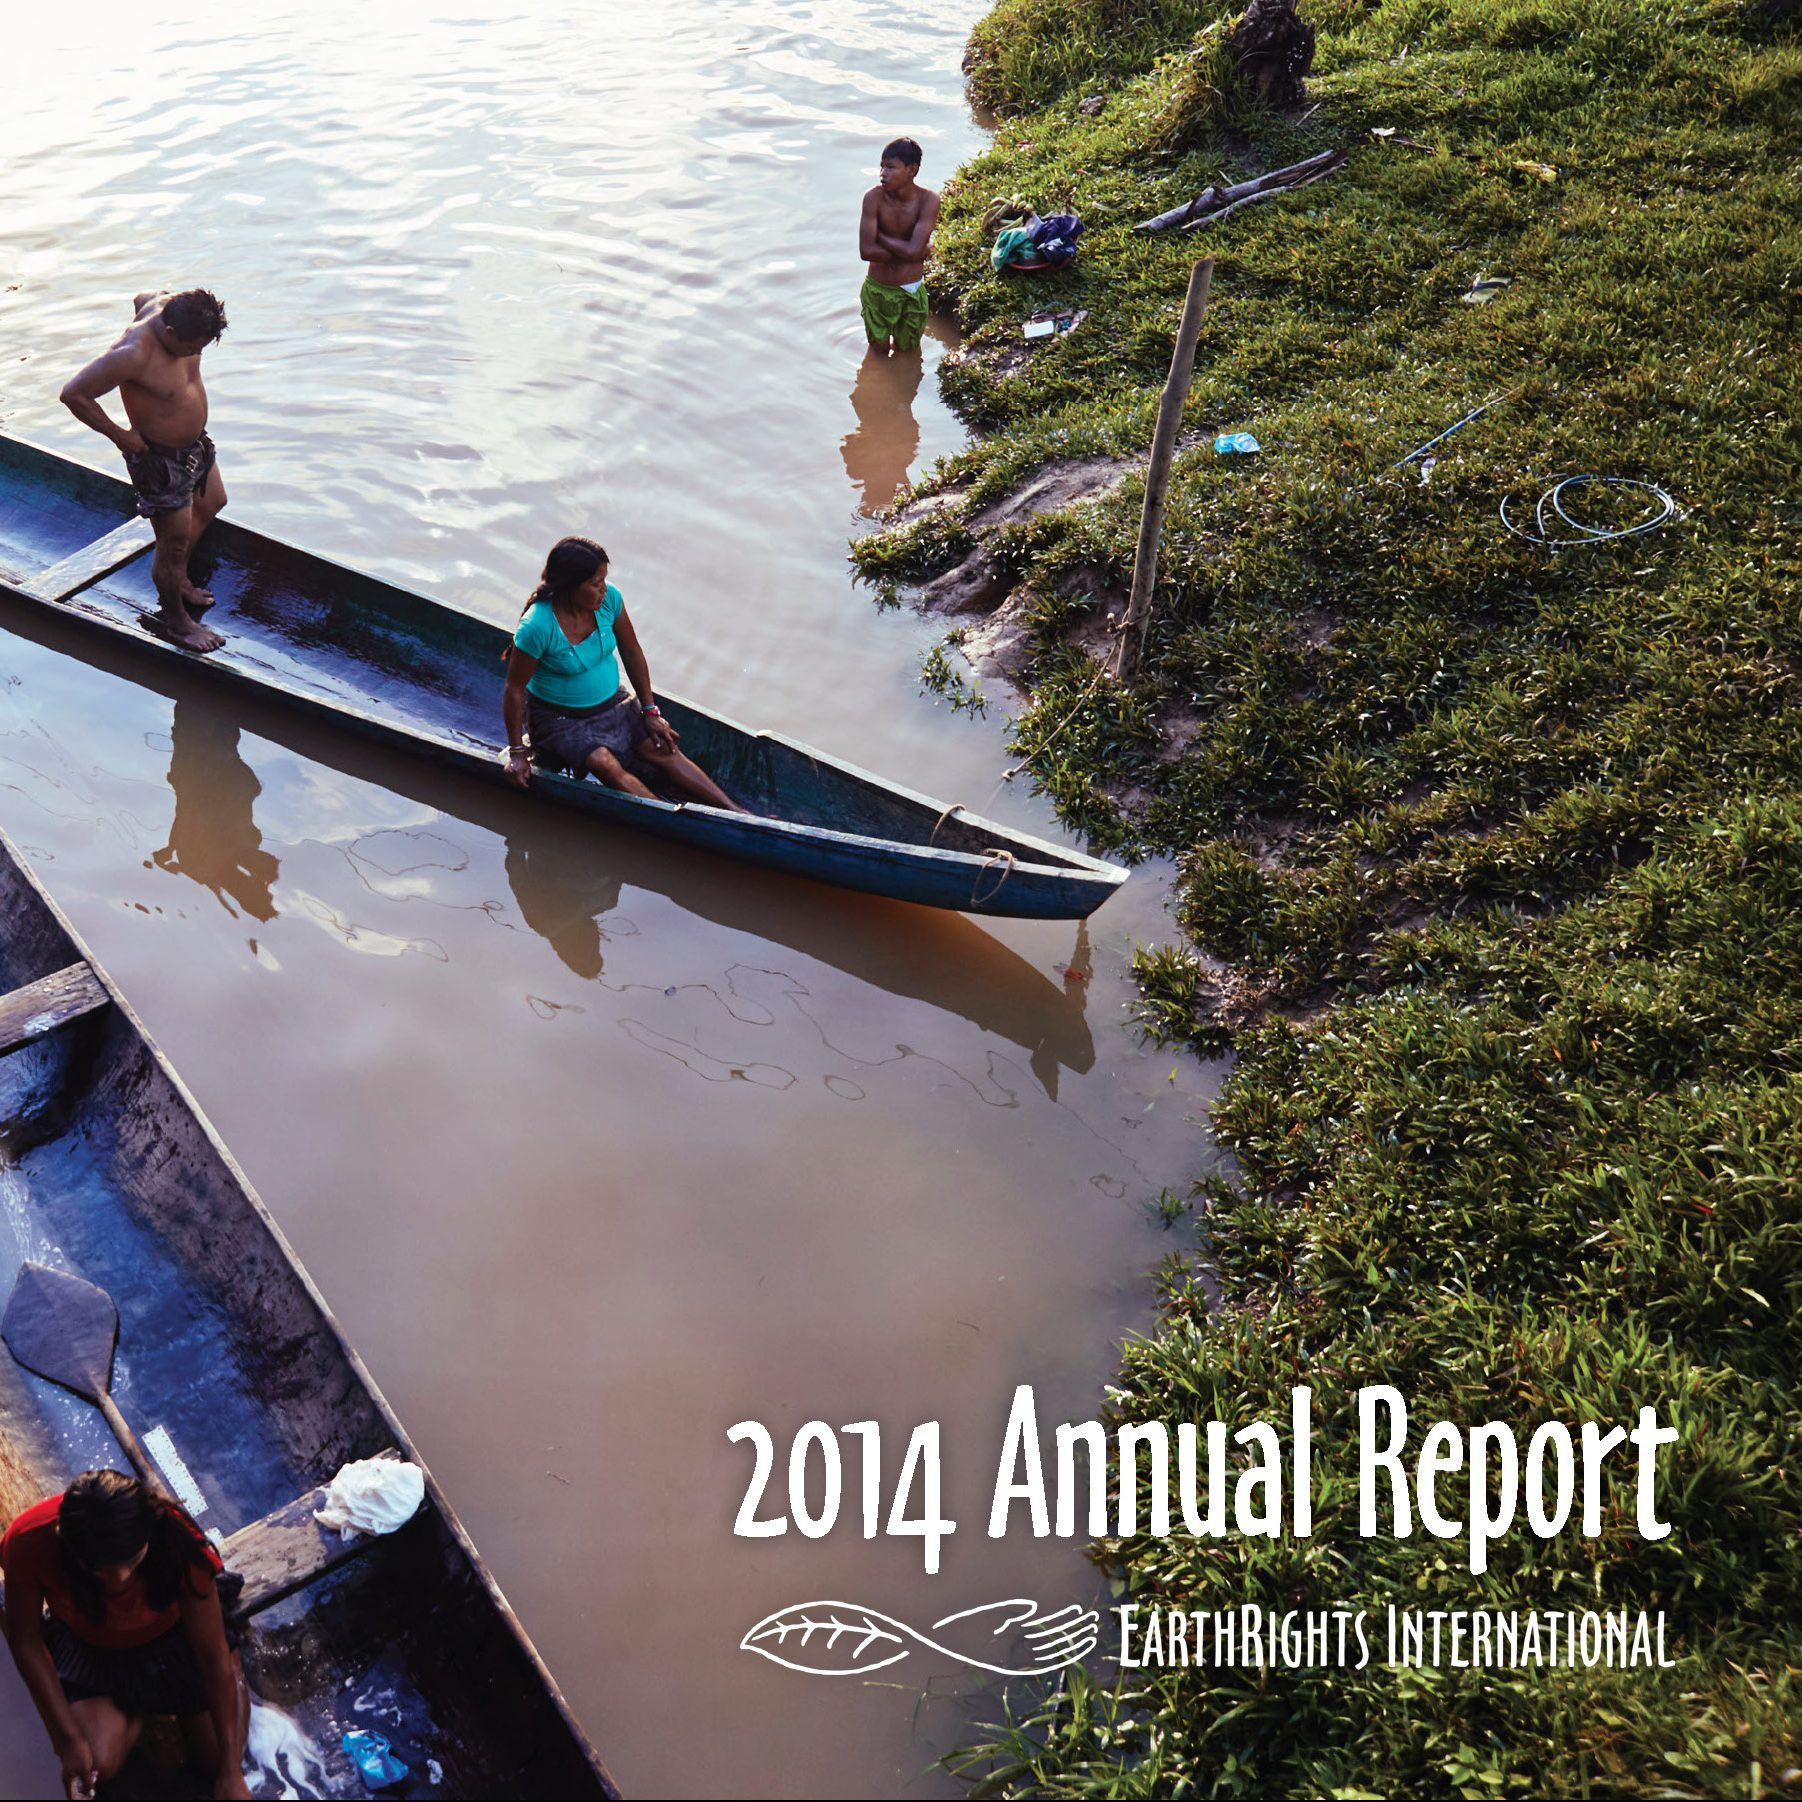 2014-annual-report-cover.jpg